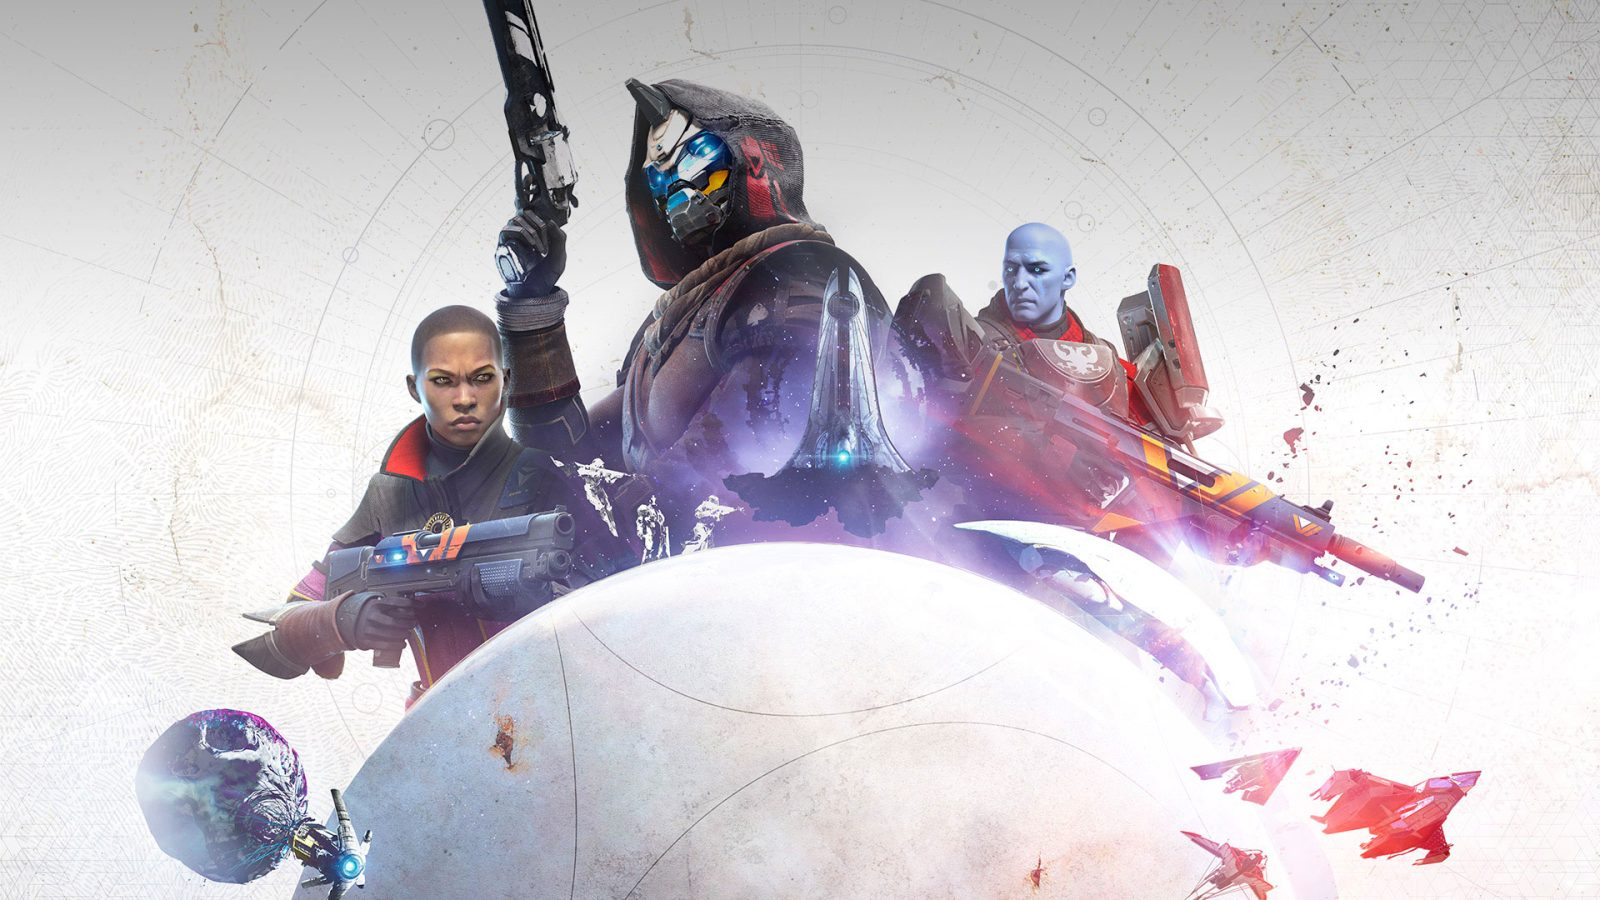 Destiny 2 New Light Will Be Free To Play On All Platforms 9to5toys